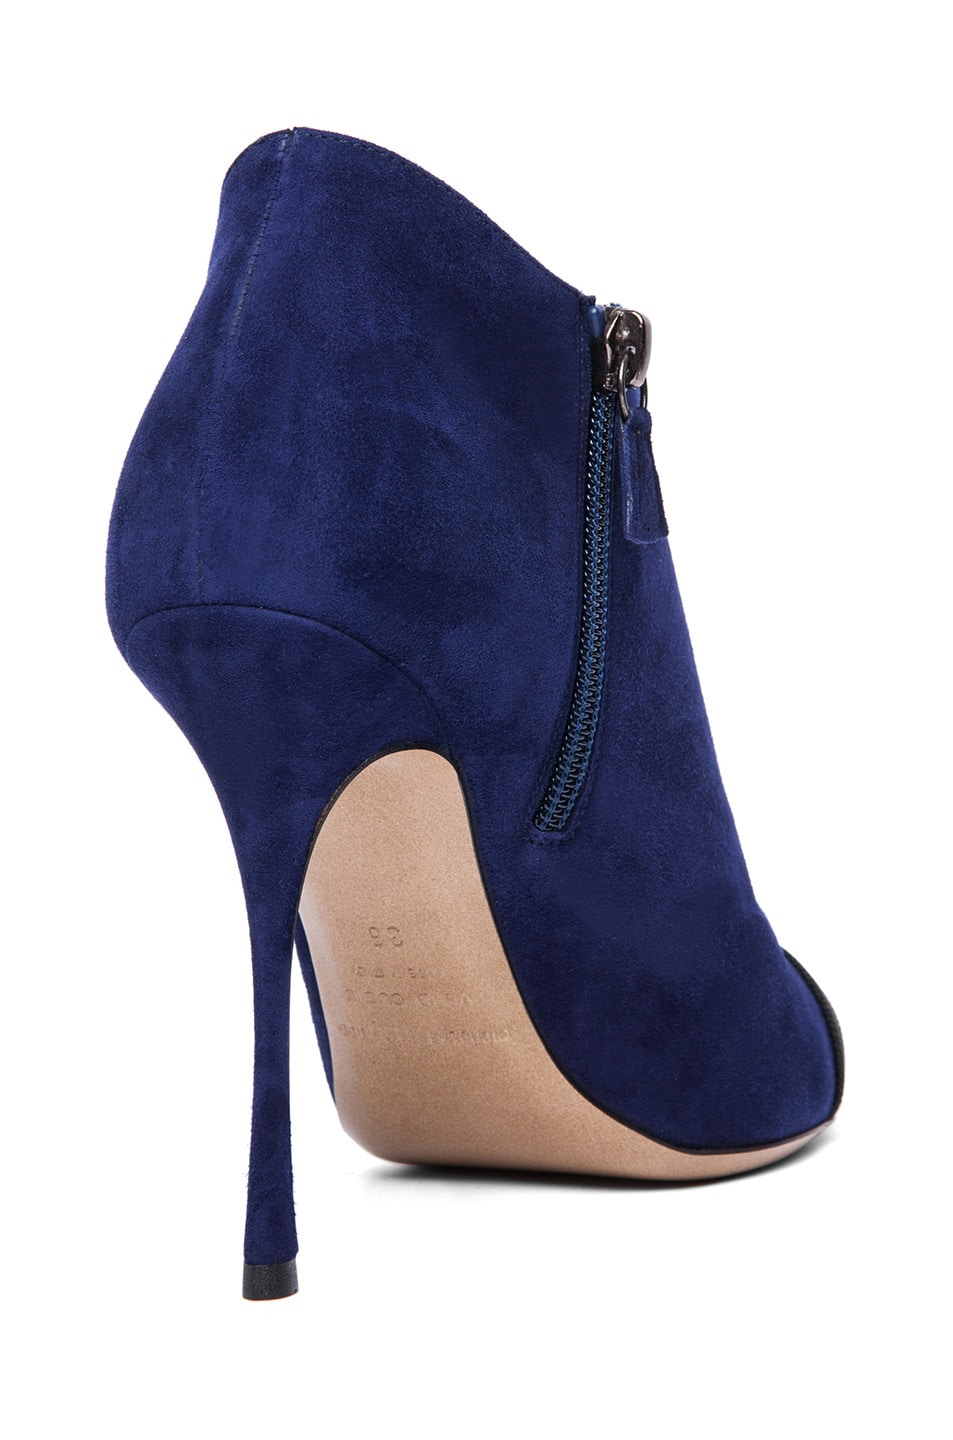 Image 3 of Nicholas Kirkwood Suede Ankle Boots in Black & Indigo